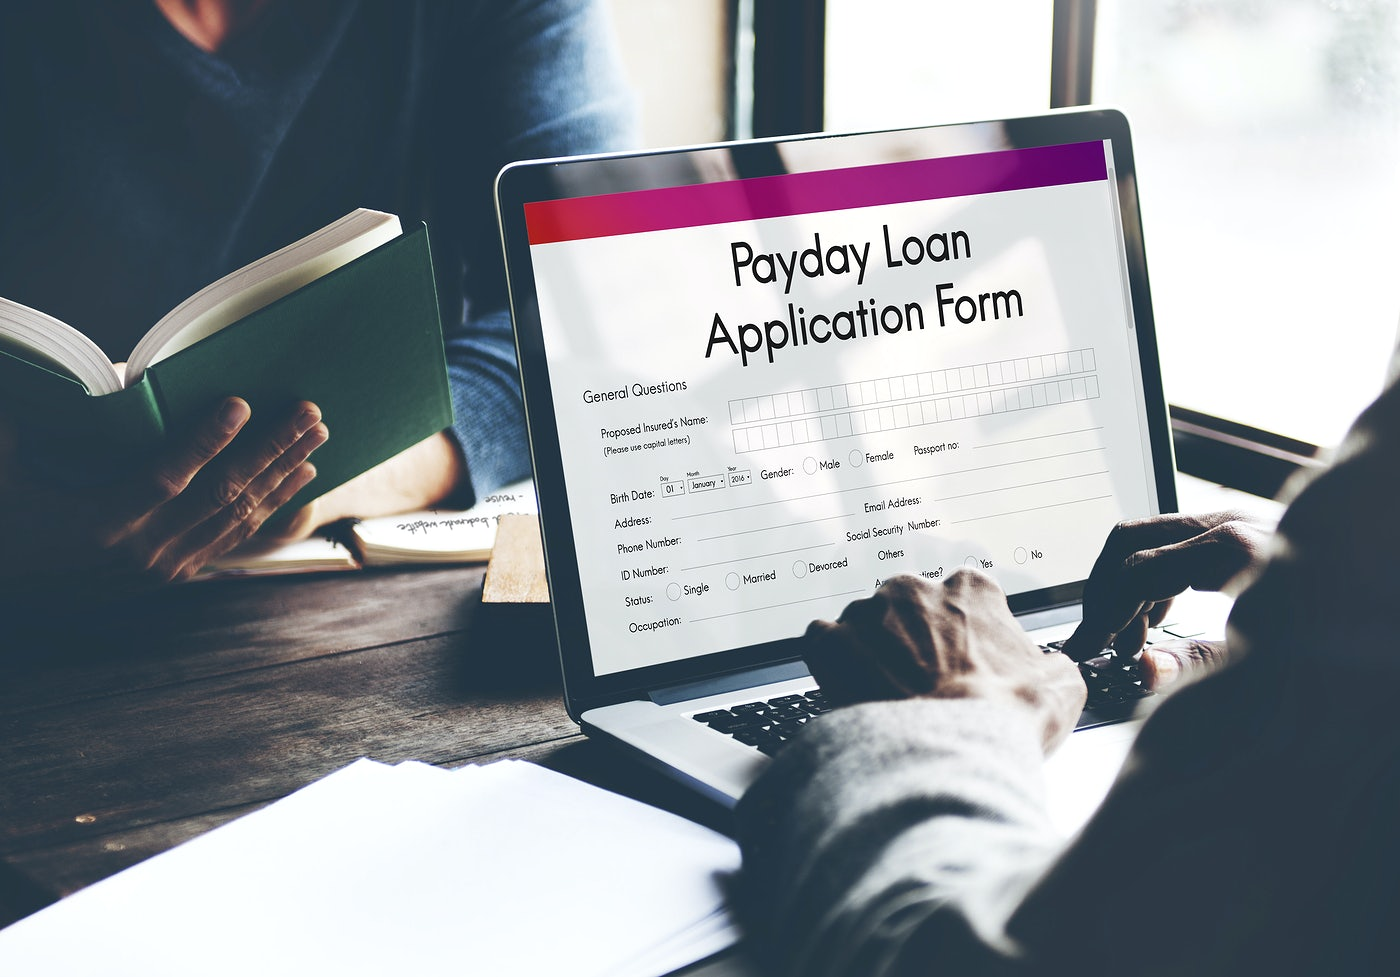 Payday Loans: How I Can Deal with My Payday Loan Debt